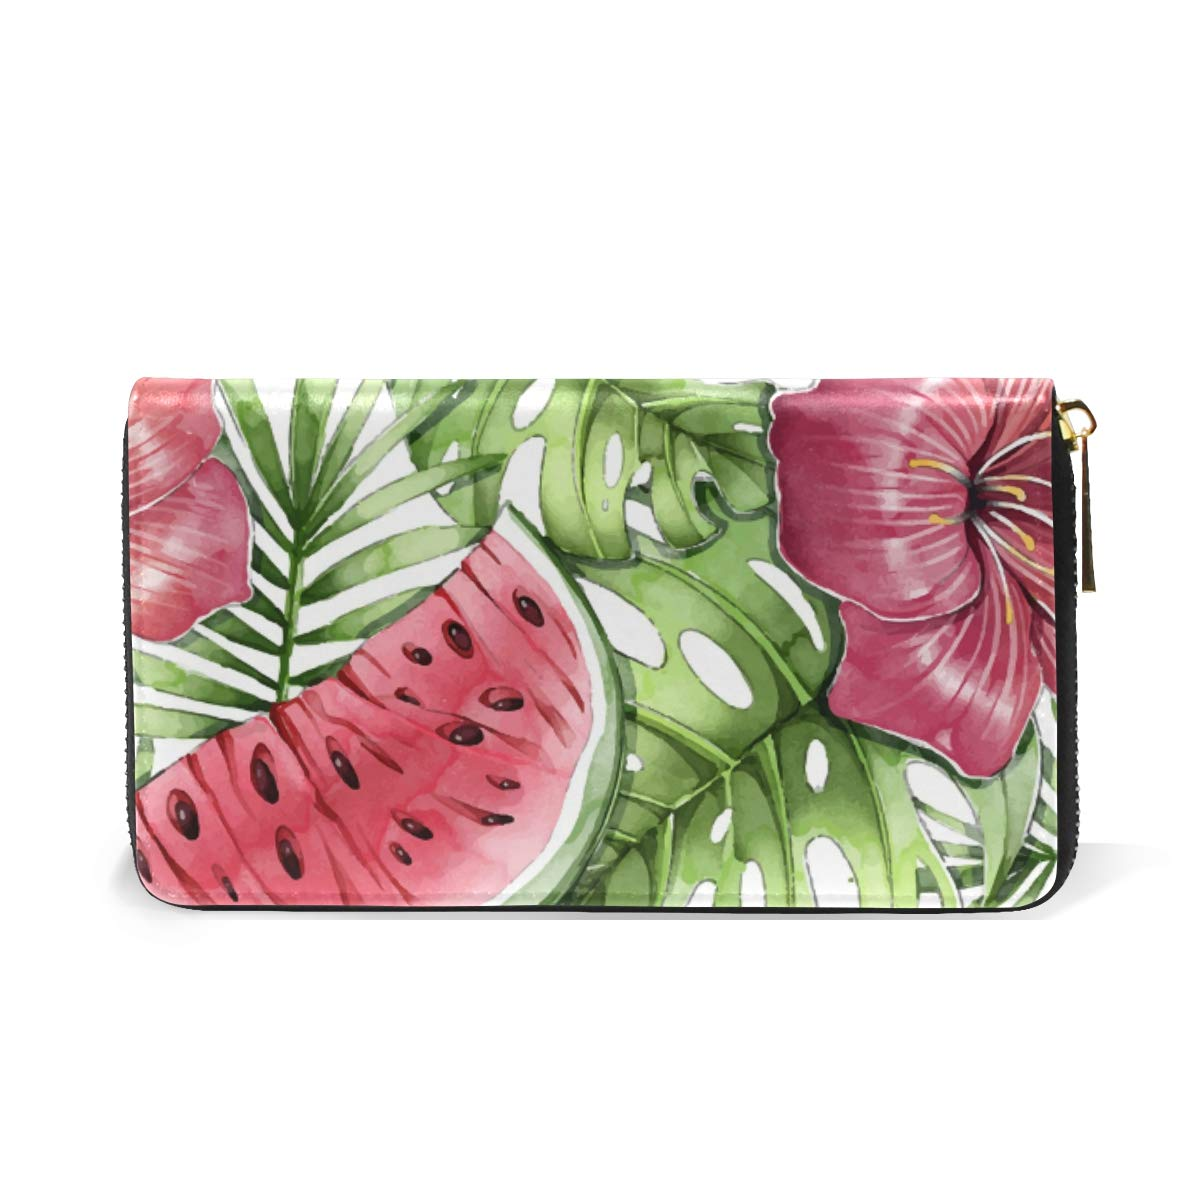 Women Wallet Coin Purse Phone Clutch Pouch Cash Bag Female Girl Card Change Holder Organizer Storage Key Hold Leather Elegant Handbag Party Birthday Gift Watercolor Tropical